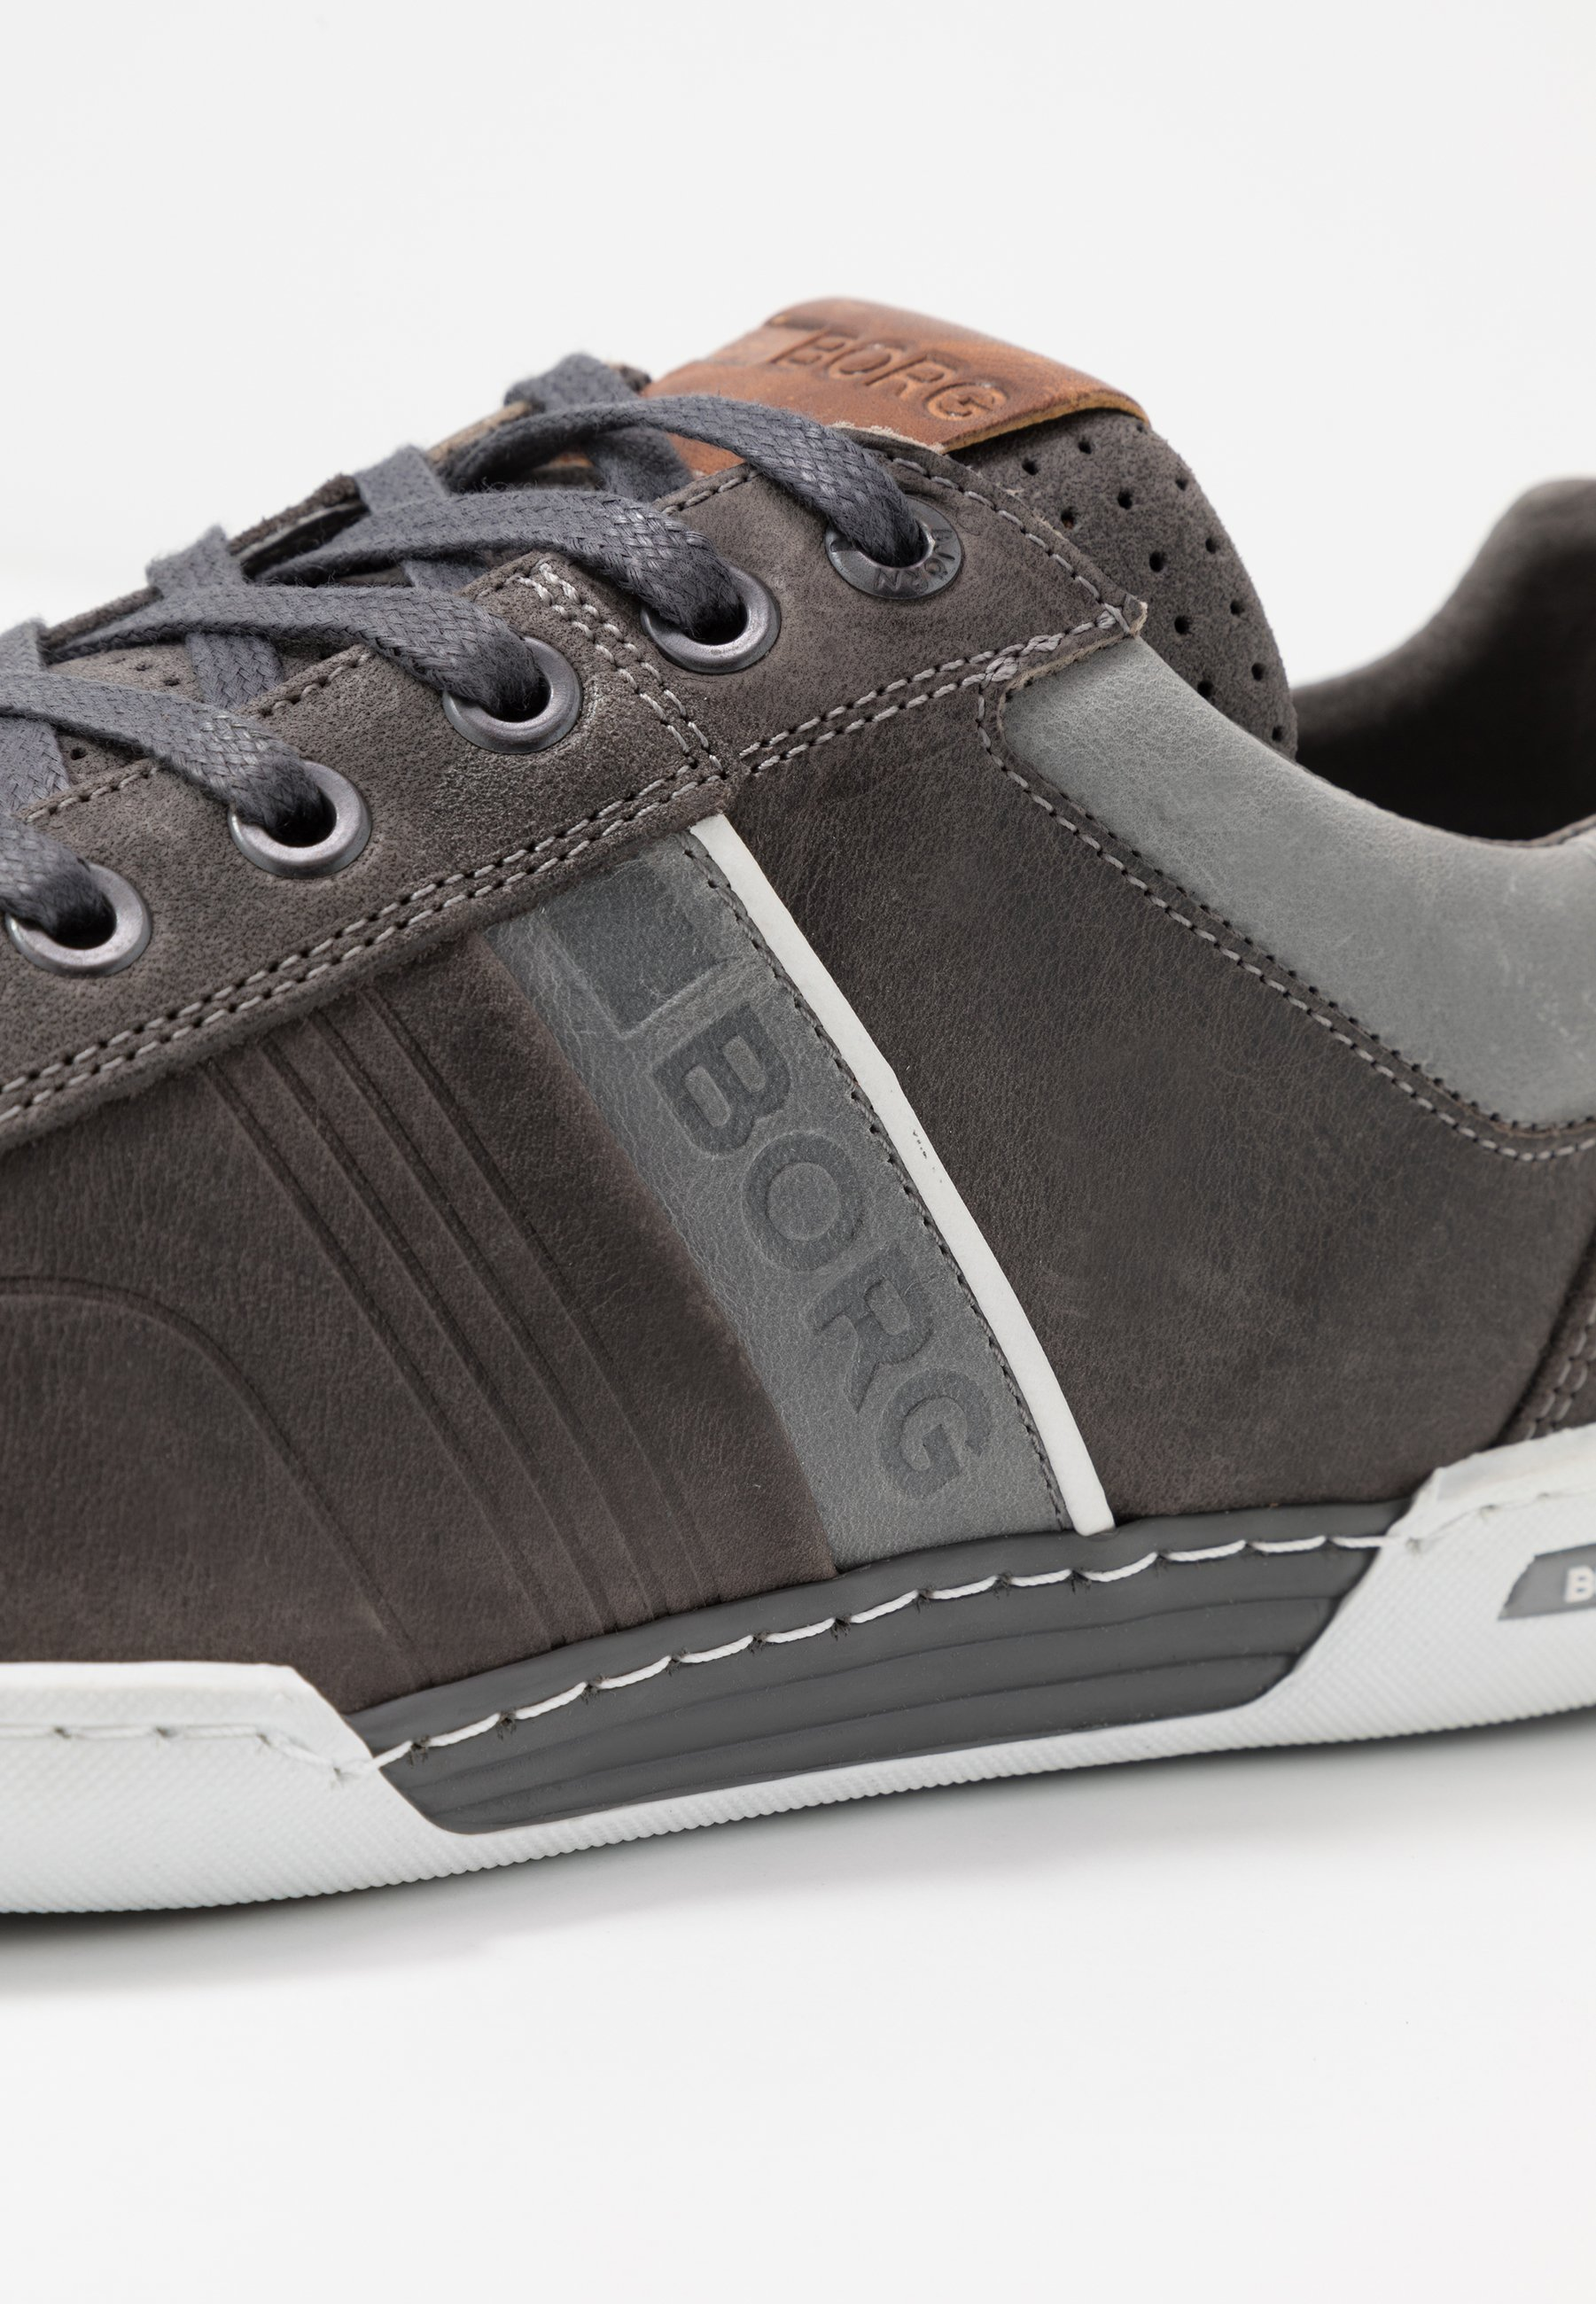 Björn Borg COLTRANE Joggesko dark grey Zalando.no